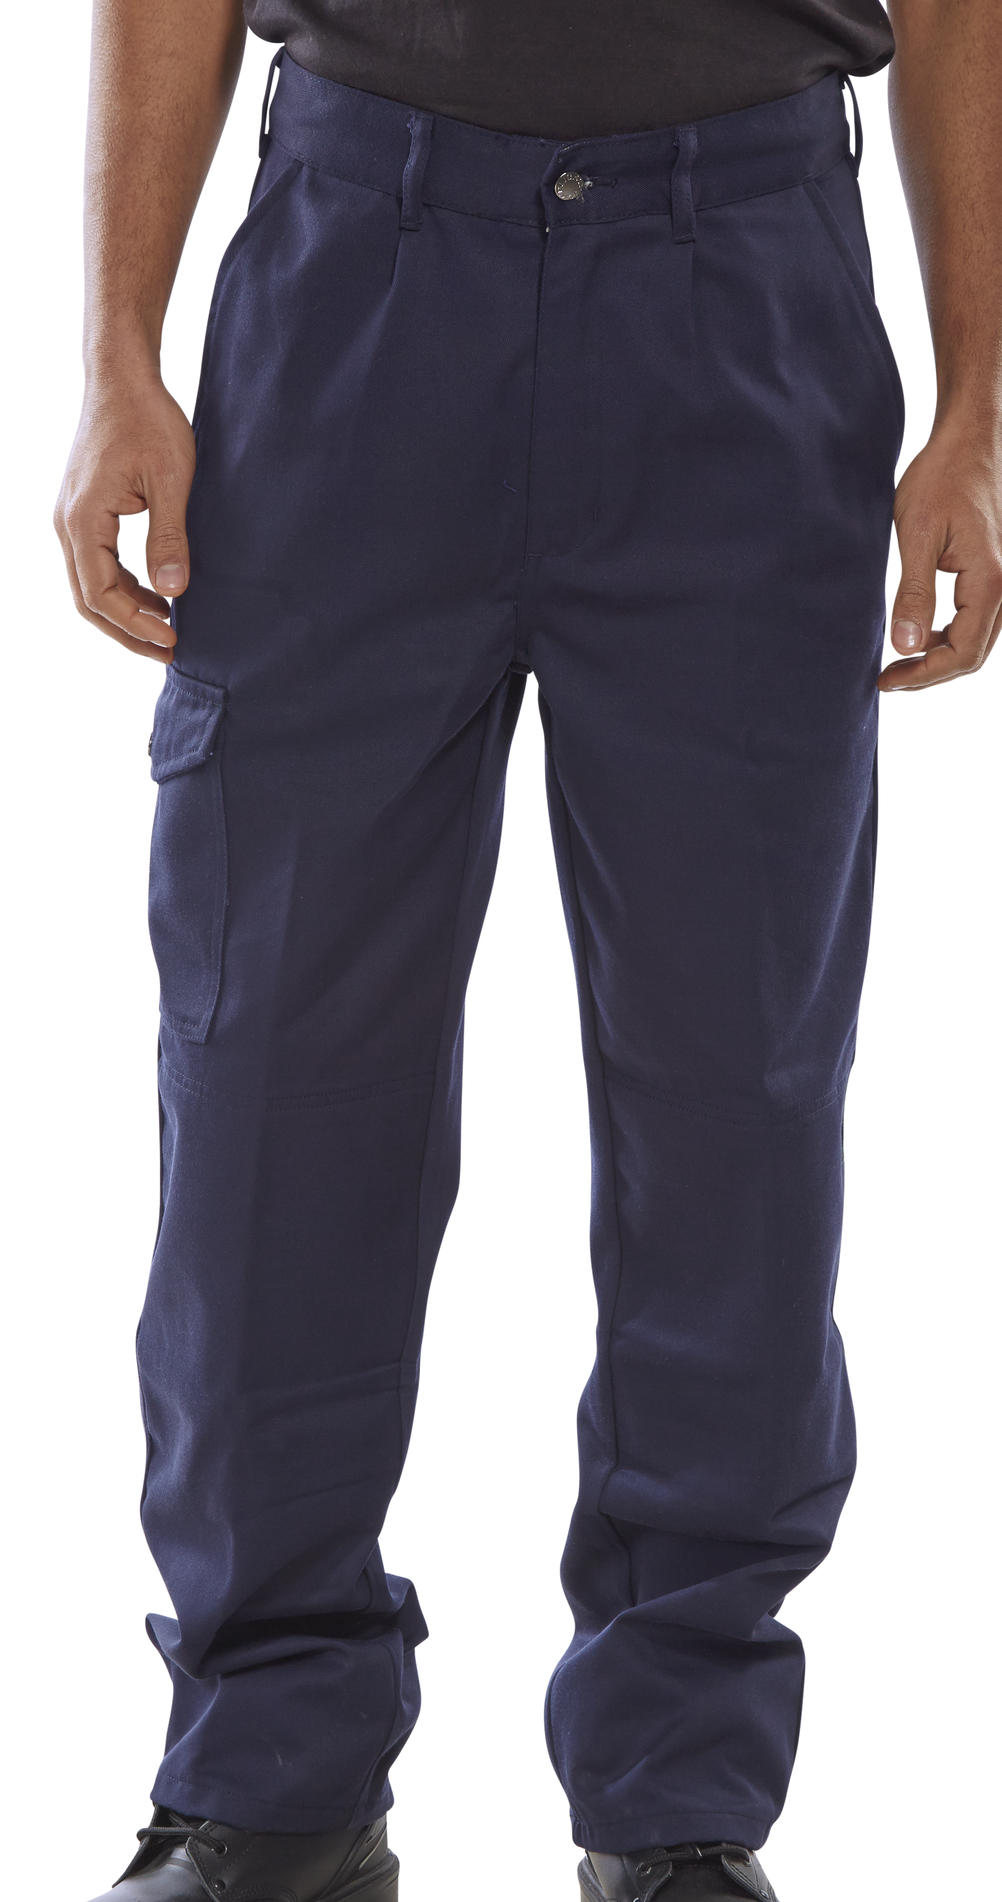 PCT9 - HEAVYWEIGHT DRIVERS TROUSERS NAVY BLUE @ Beeswift